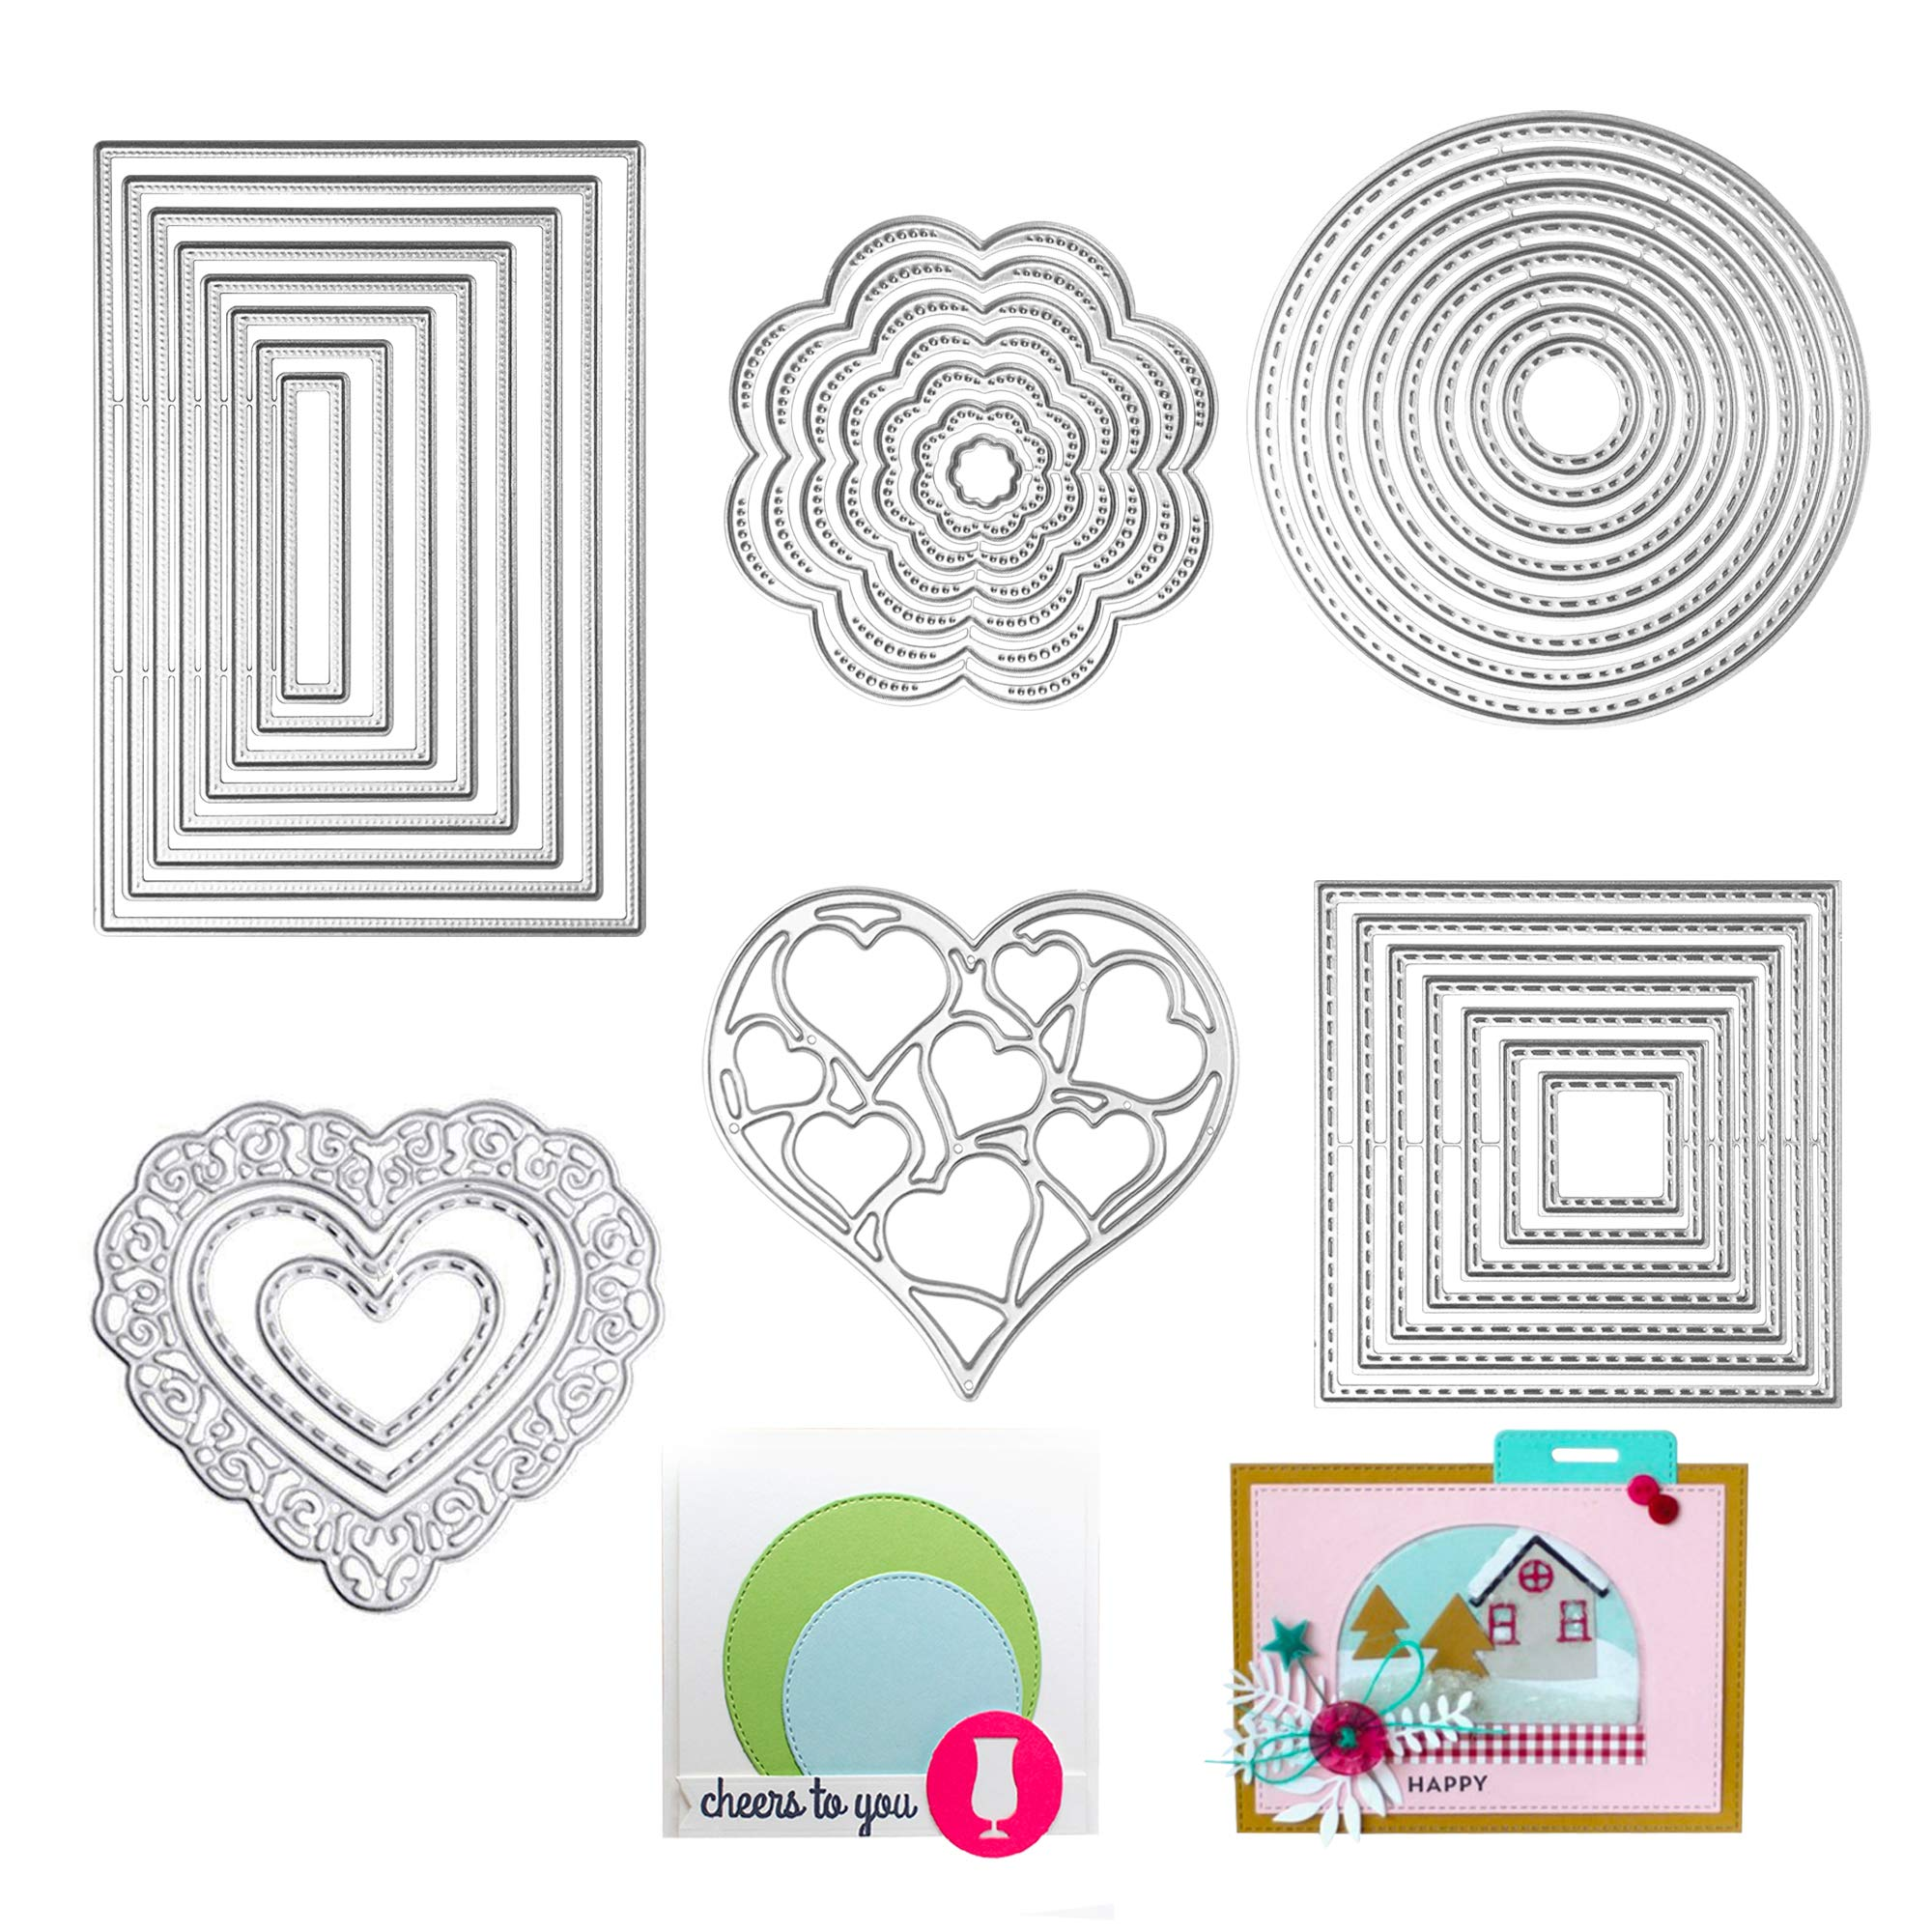 Die Cuts Cutting Dies Metal Square Rectangle Heart Round Flower Embossing Stencils Template Mould for Card Scrapbooking and DIY Crafts 6 Set 34 PCS